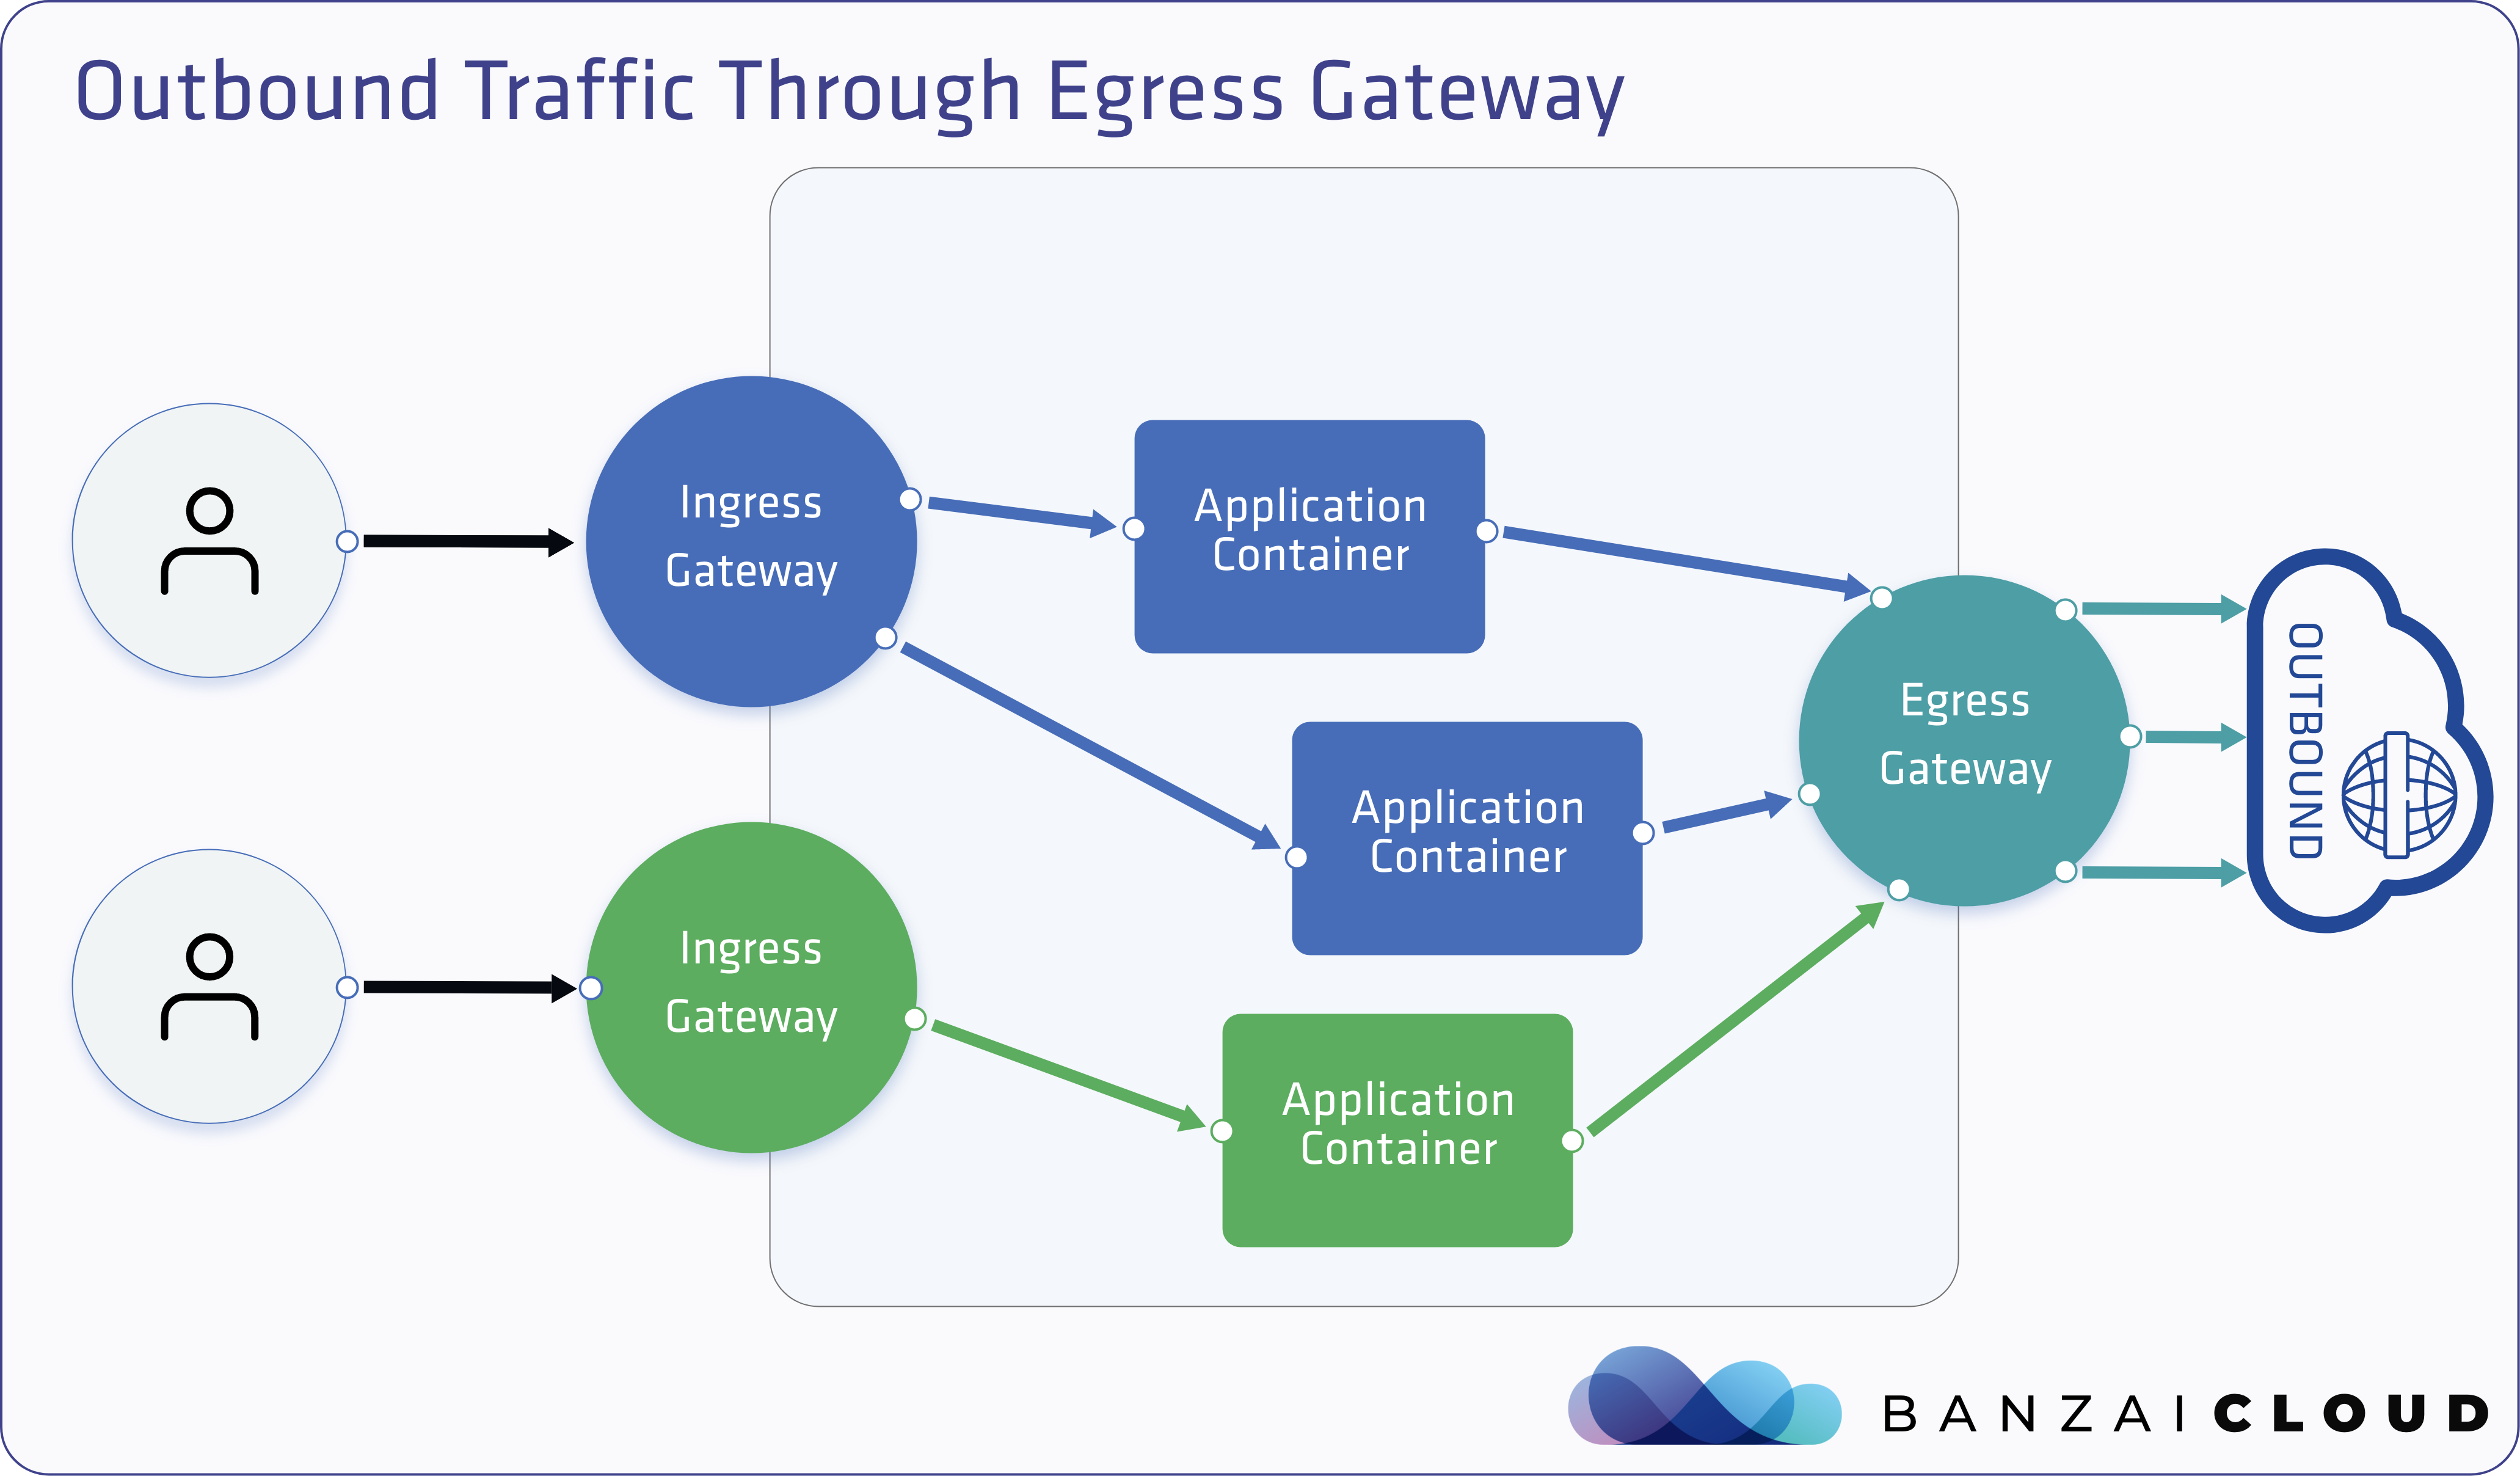 Outbound traffic through Egress Gateway